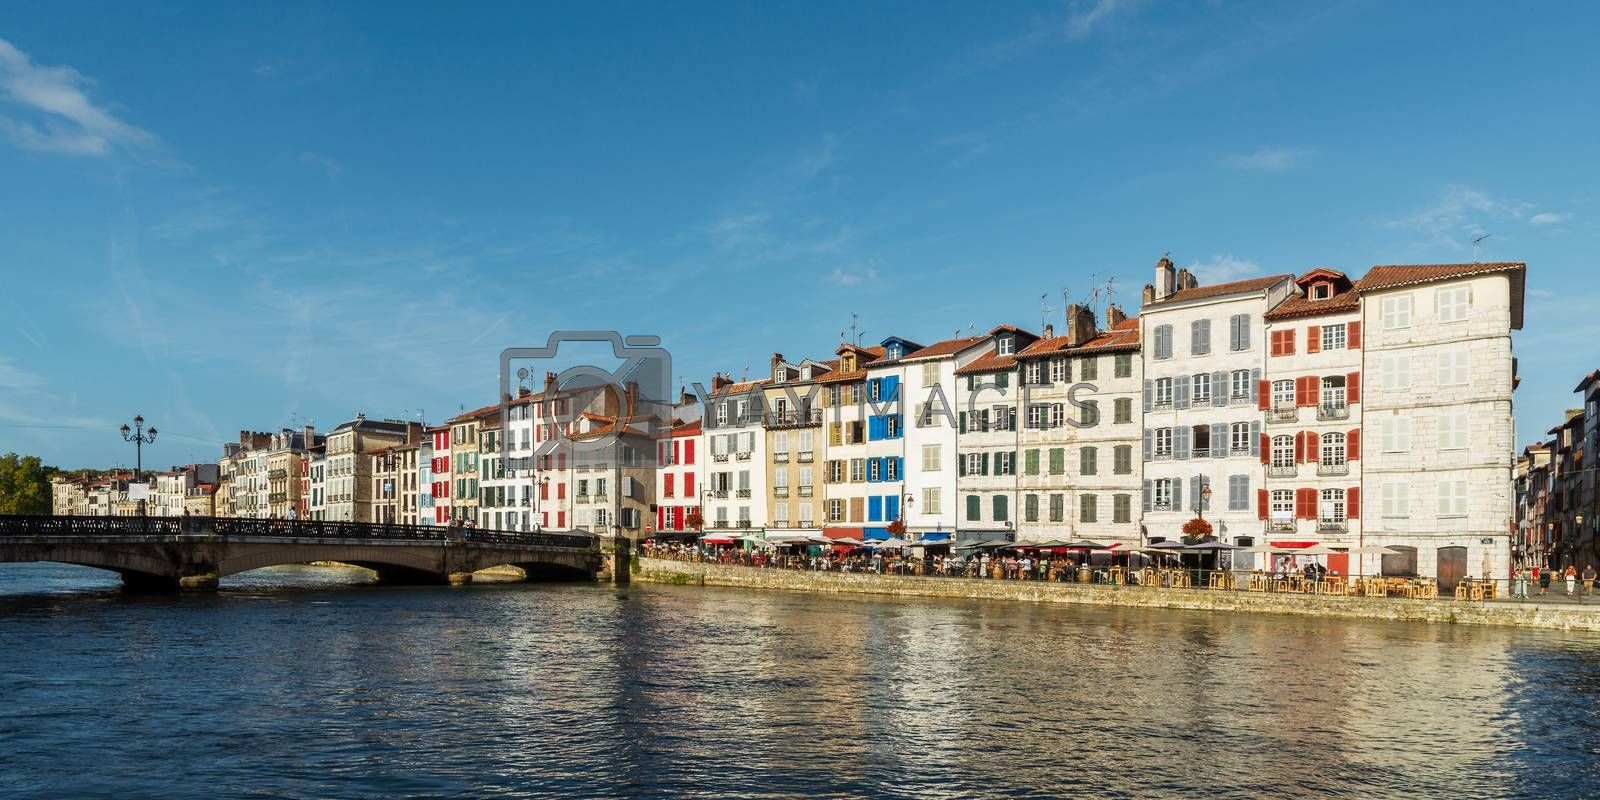 Colorful building facades along the Nive river, in Bayonne, France